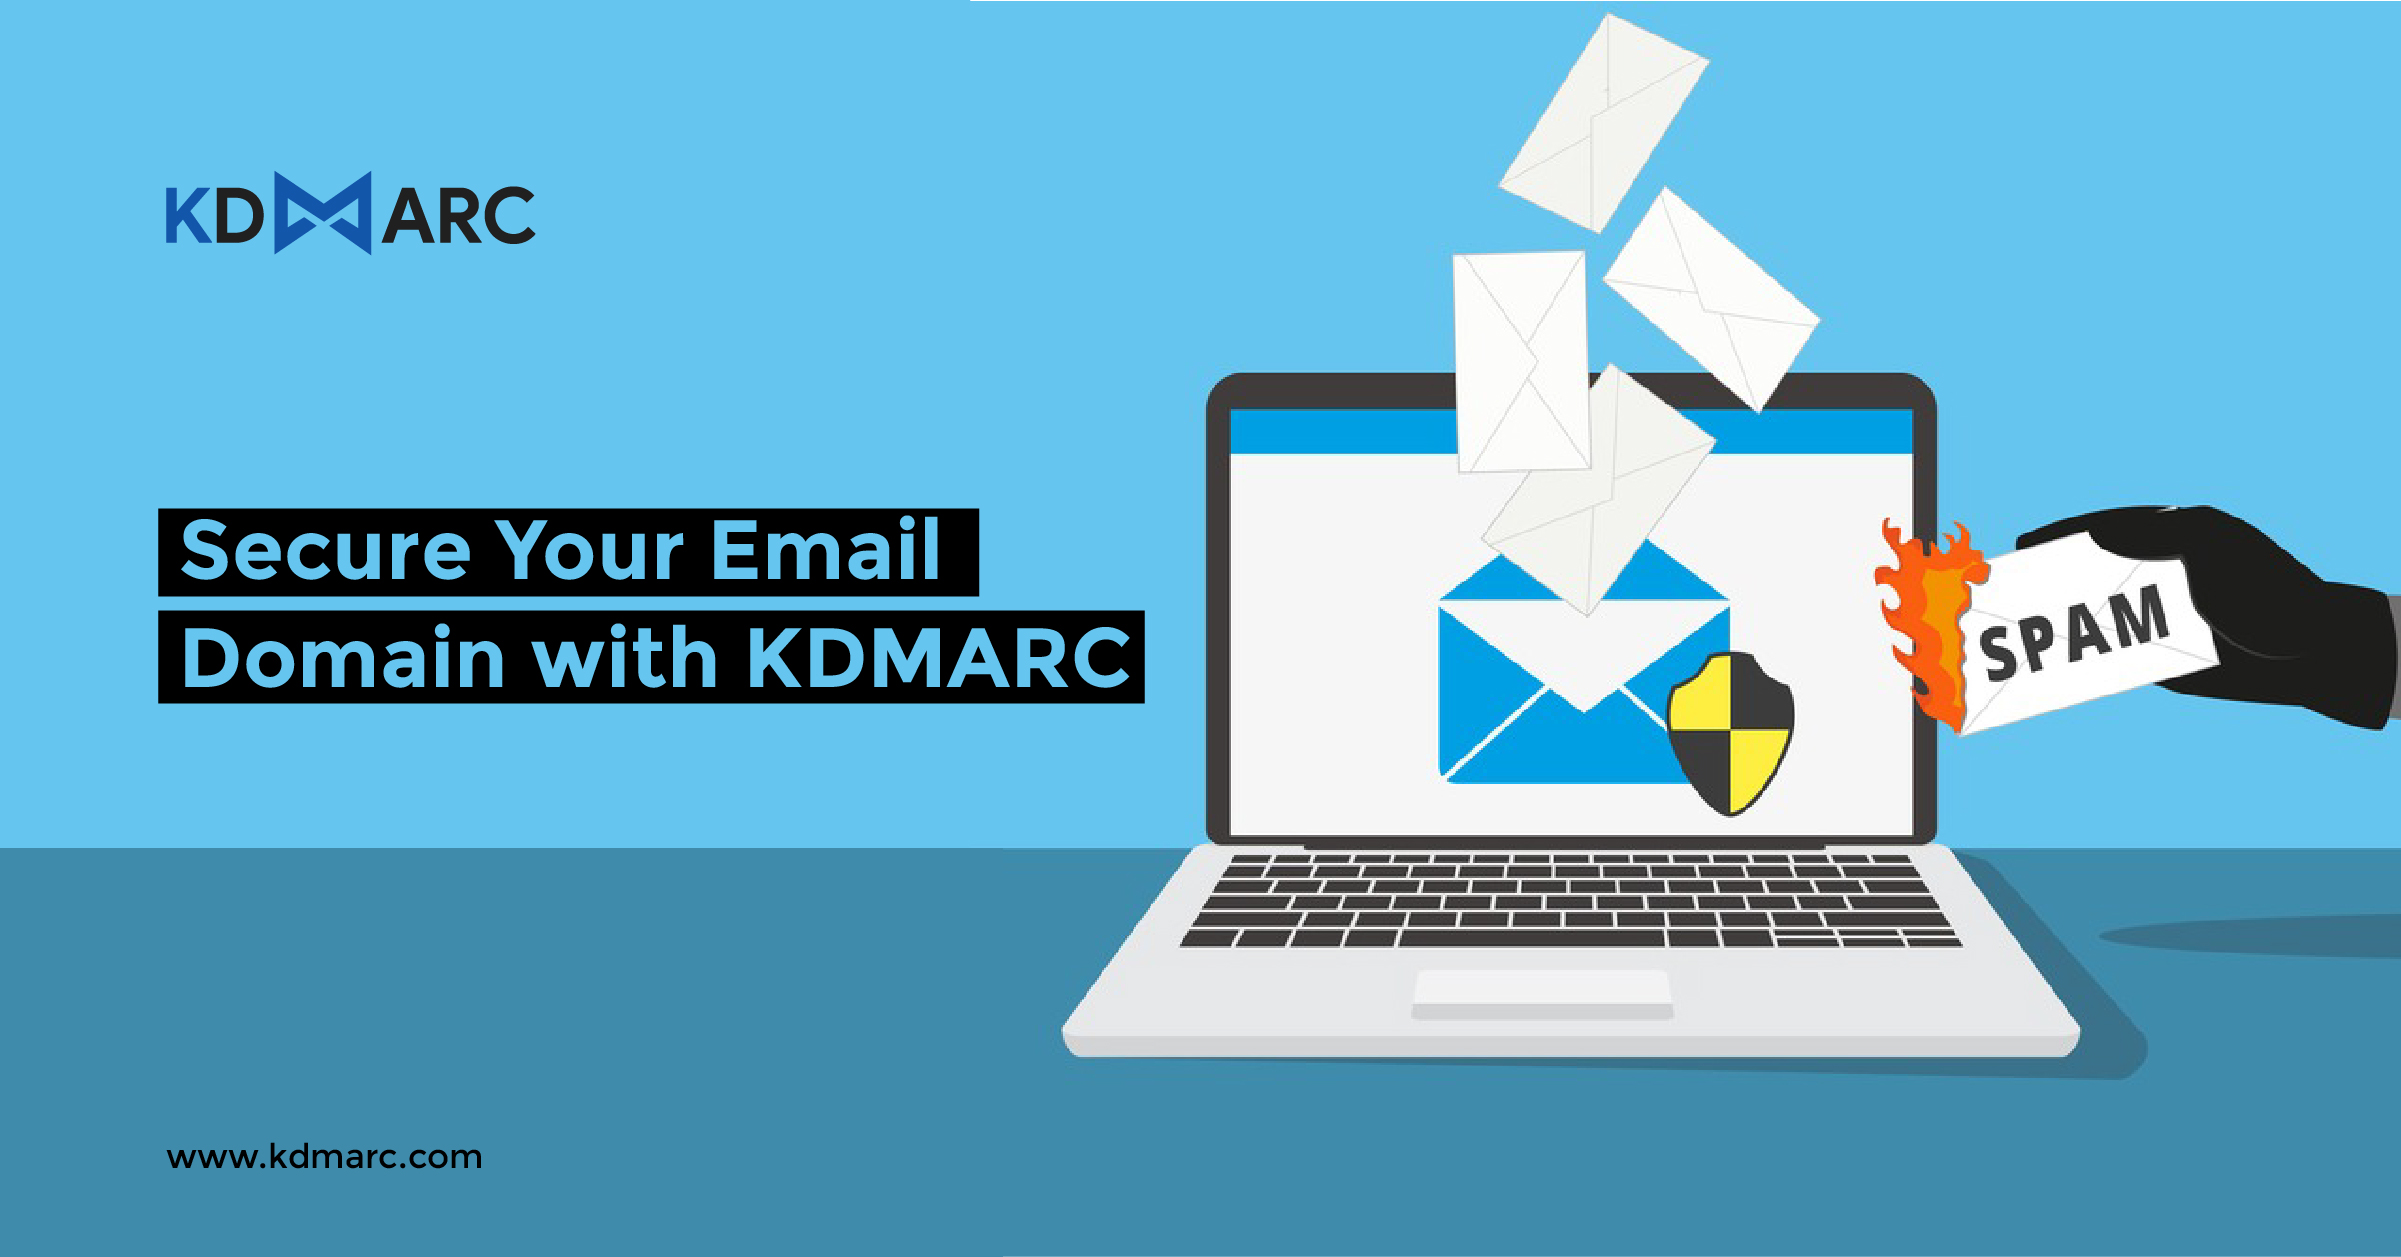 Secure Email with KDMARC